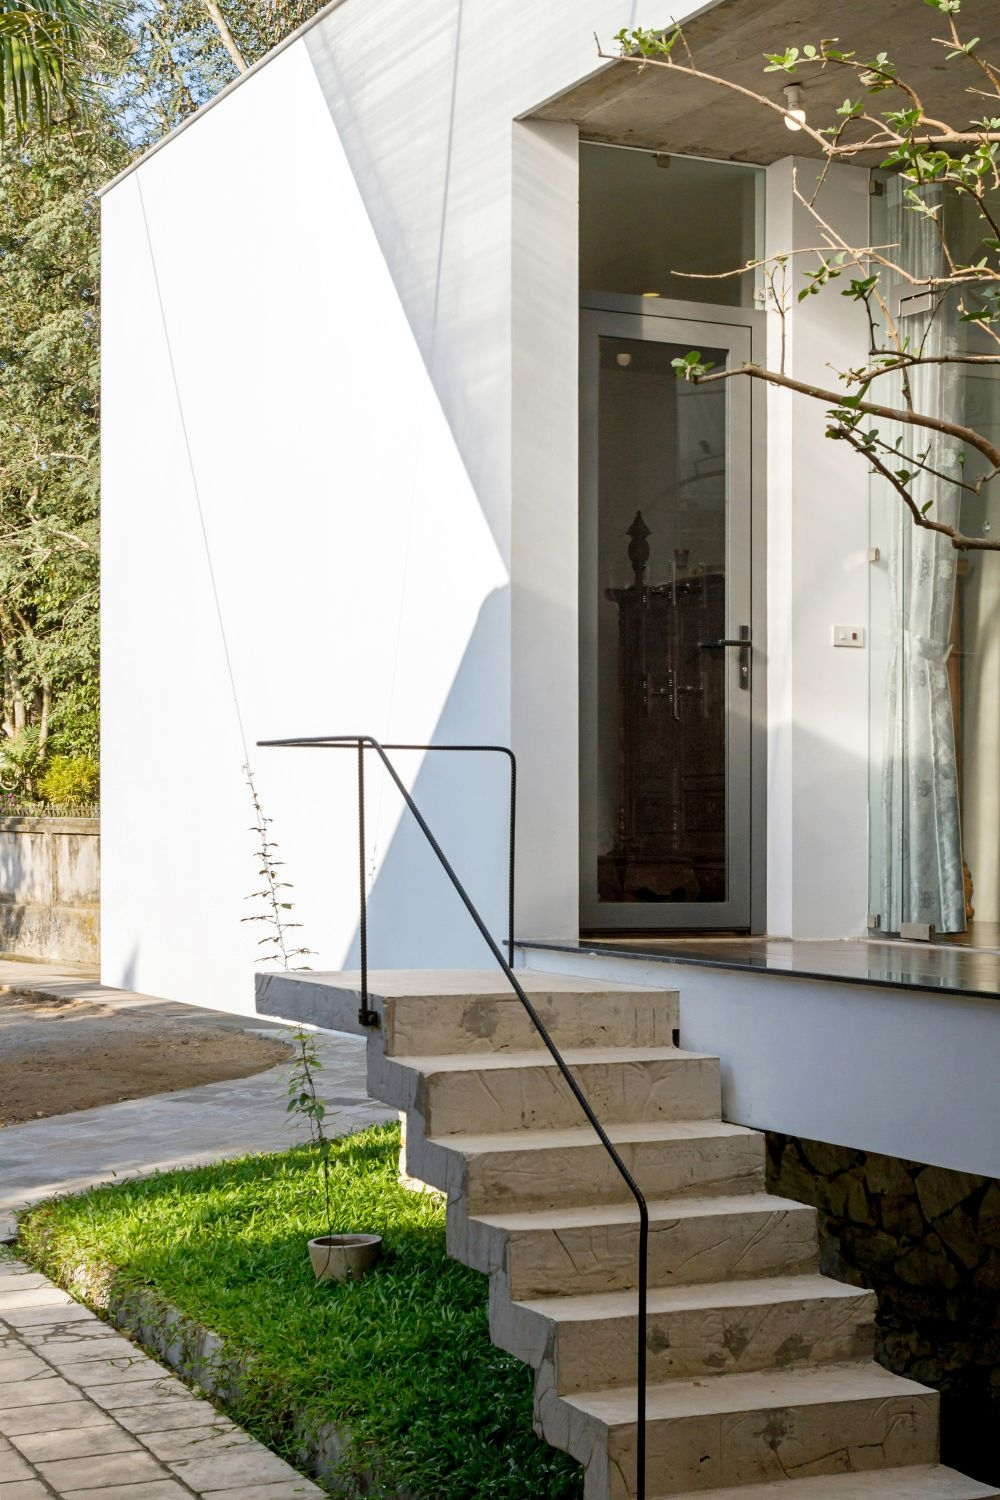 Modern Outdoor Stair Railing Designs And Ideas That Actually Make | Exterior Metal Stair Railing | Contemporary | Steel | Outdoor | Aluminum | Mild Steel